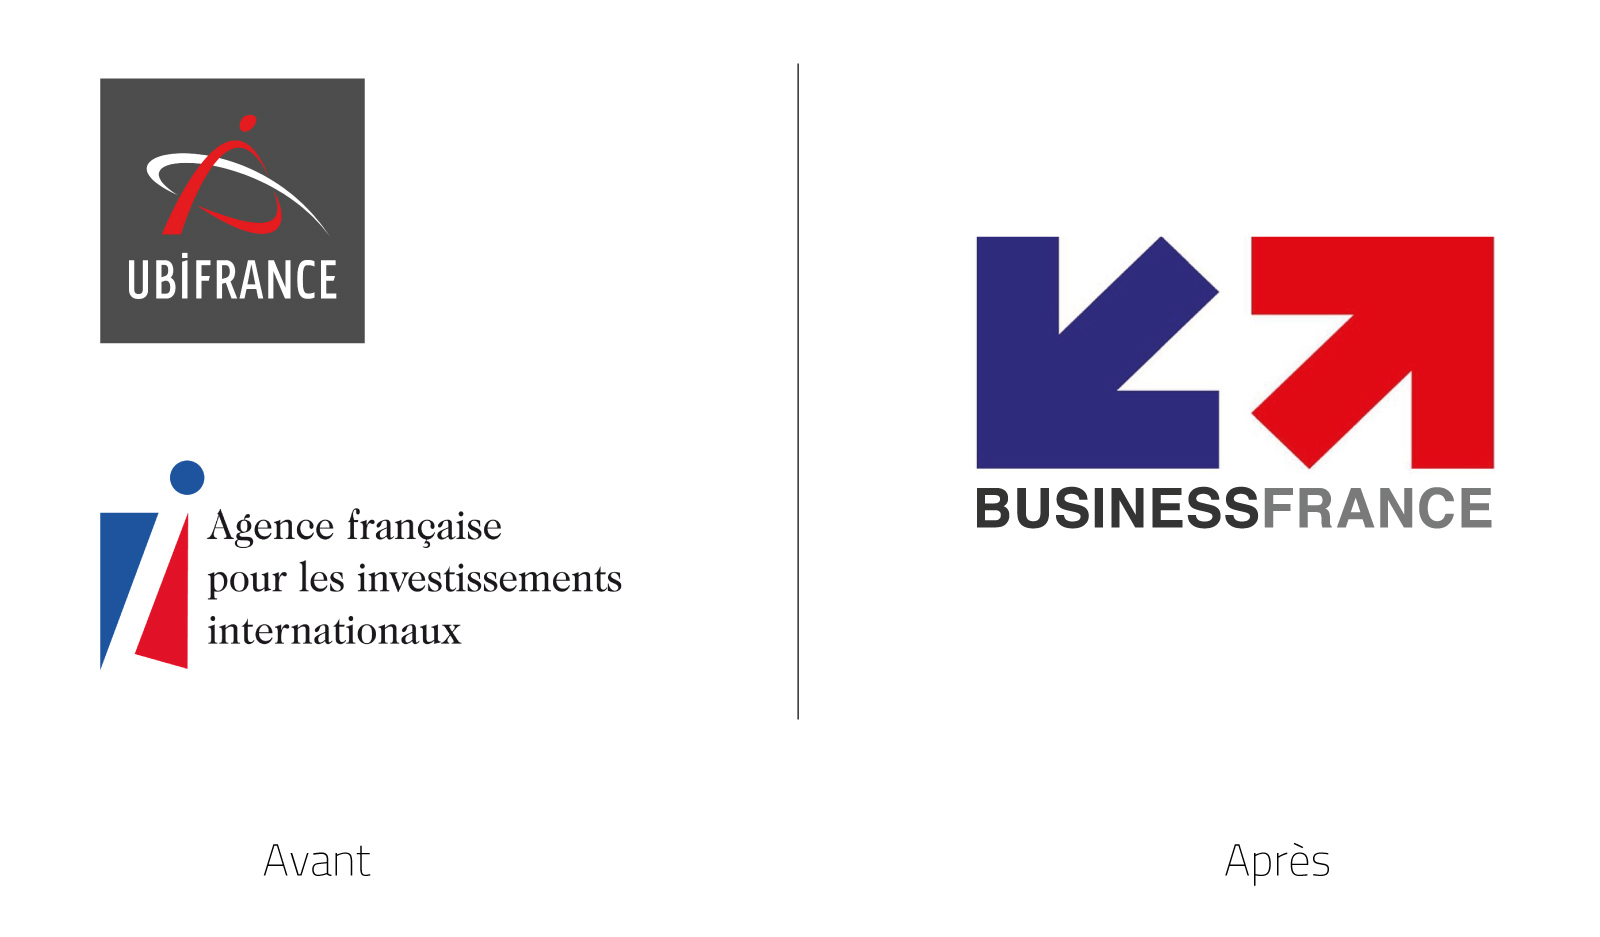 business-france-logo.jpg